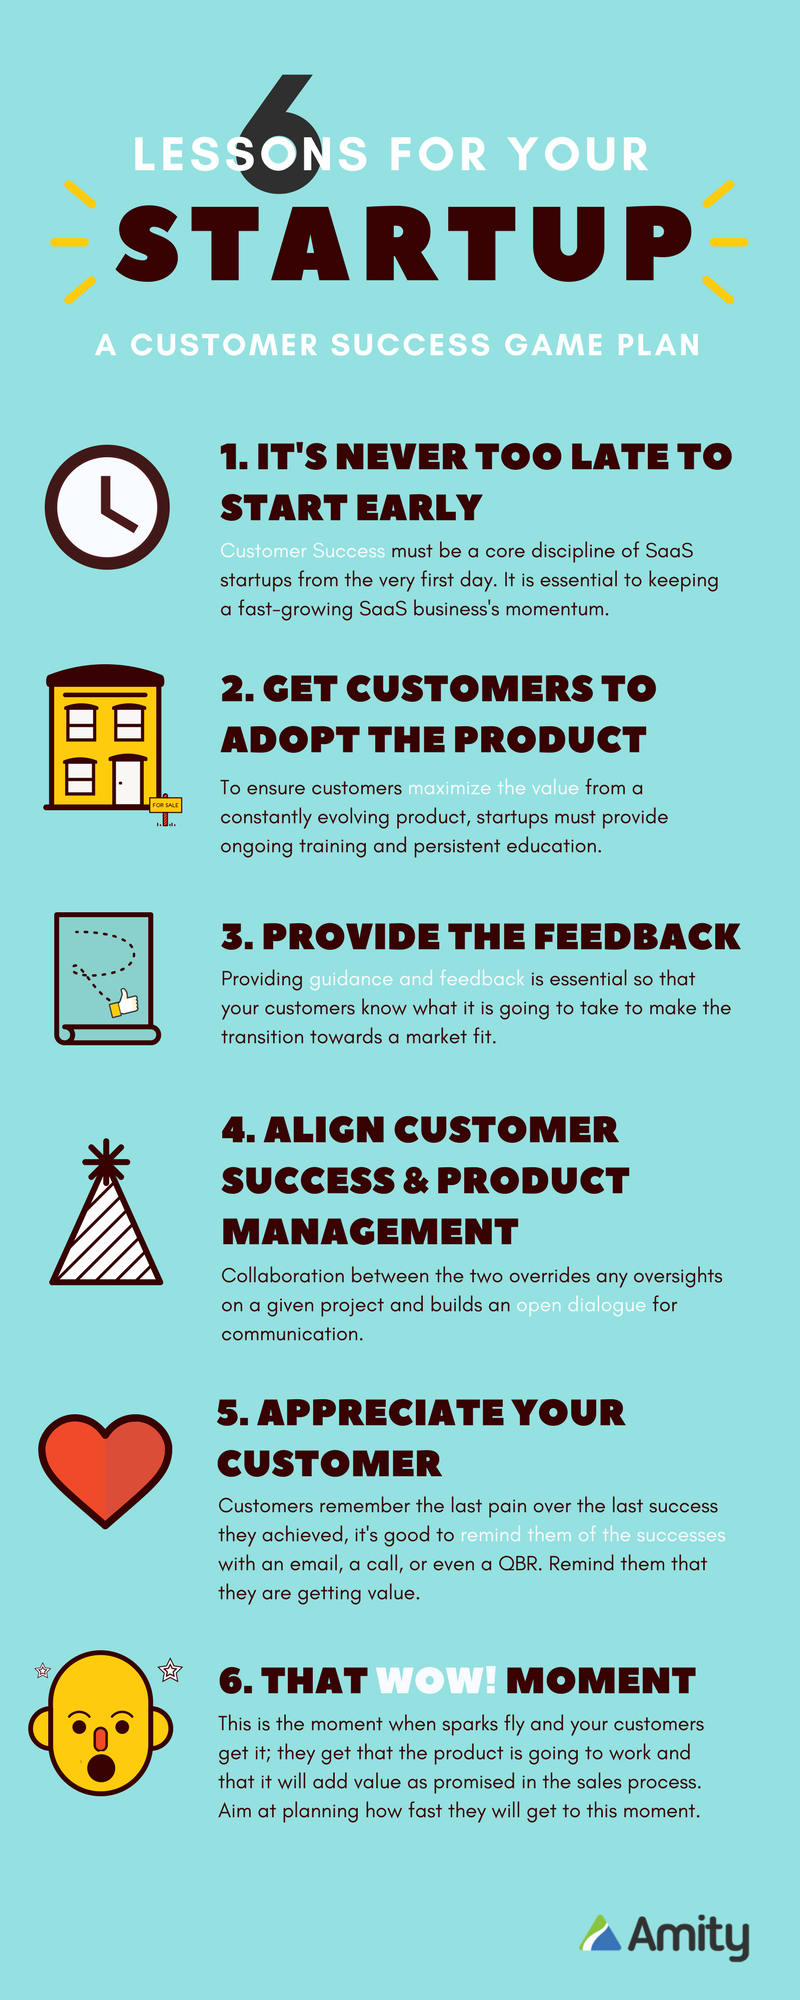 6 Lessons for Your Startup Infographic